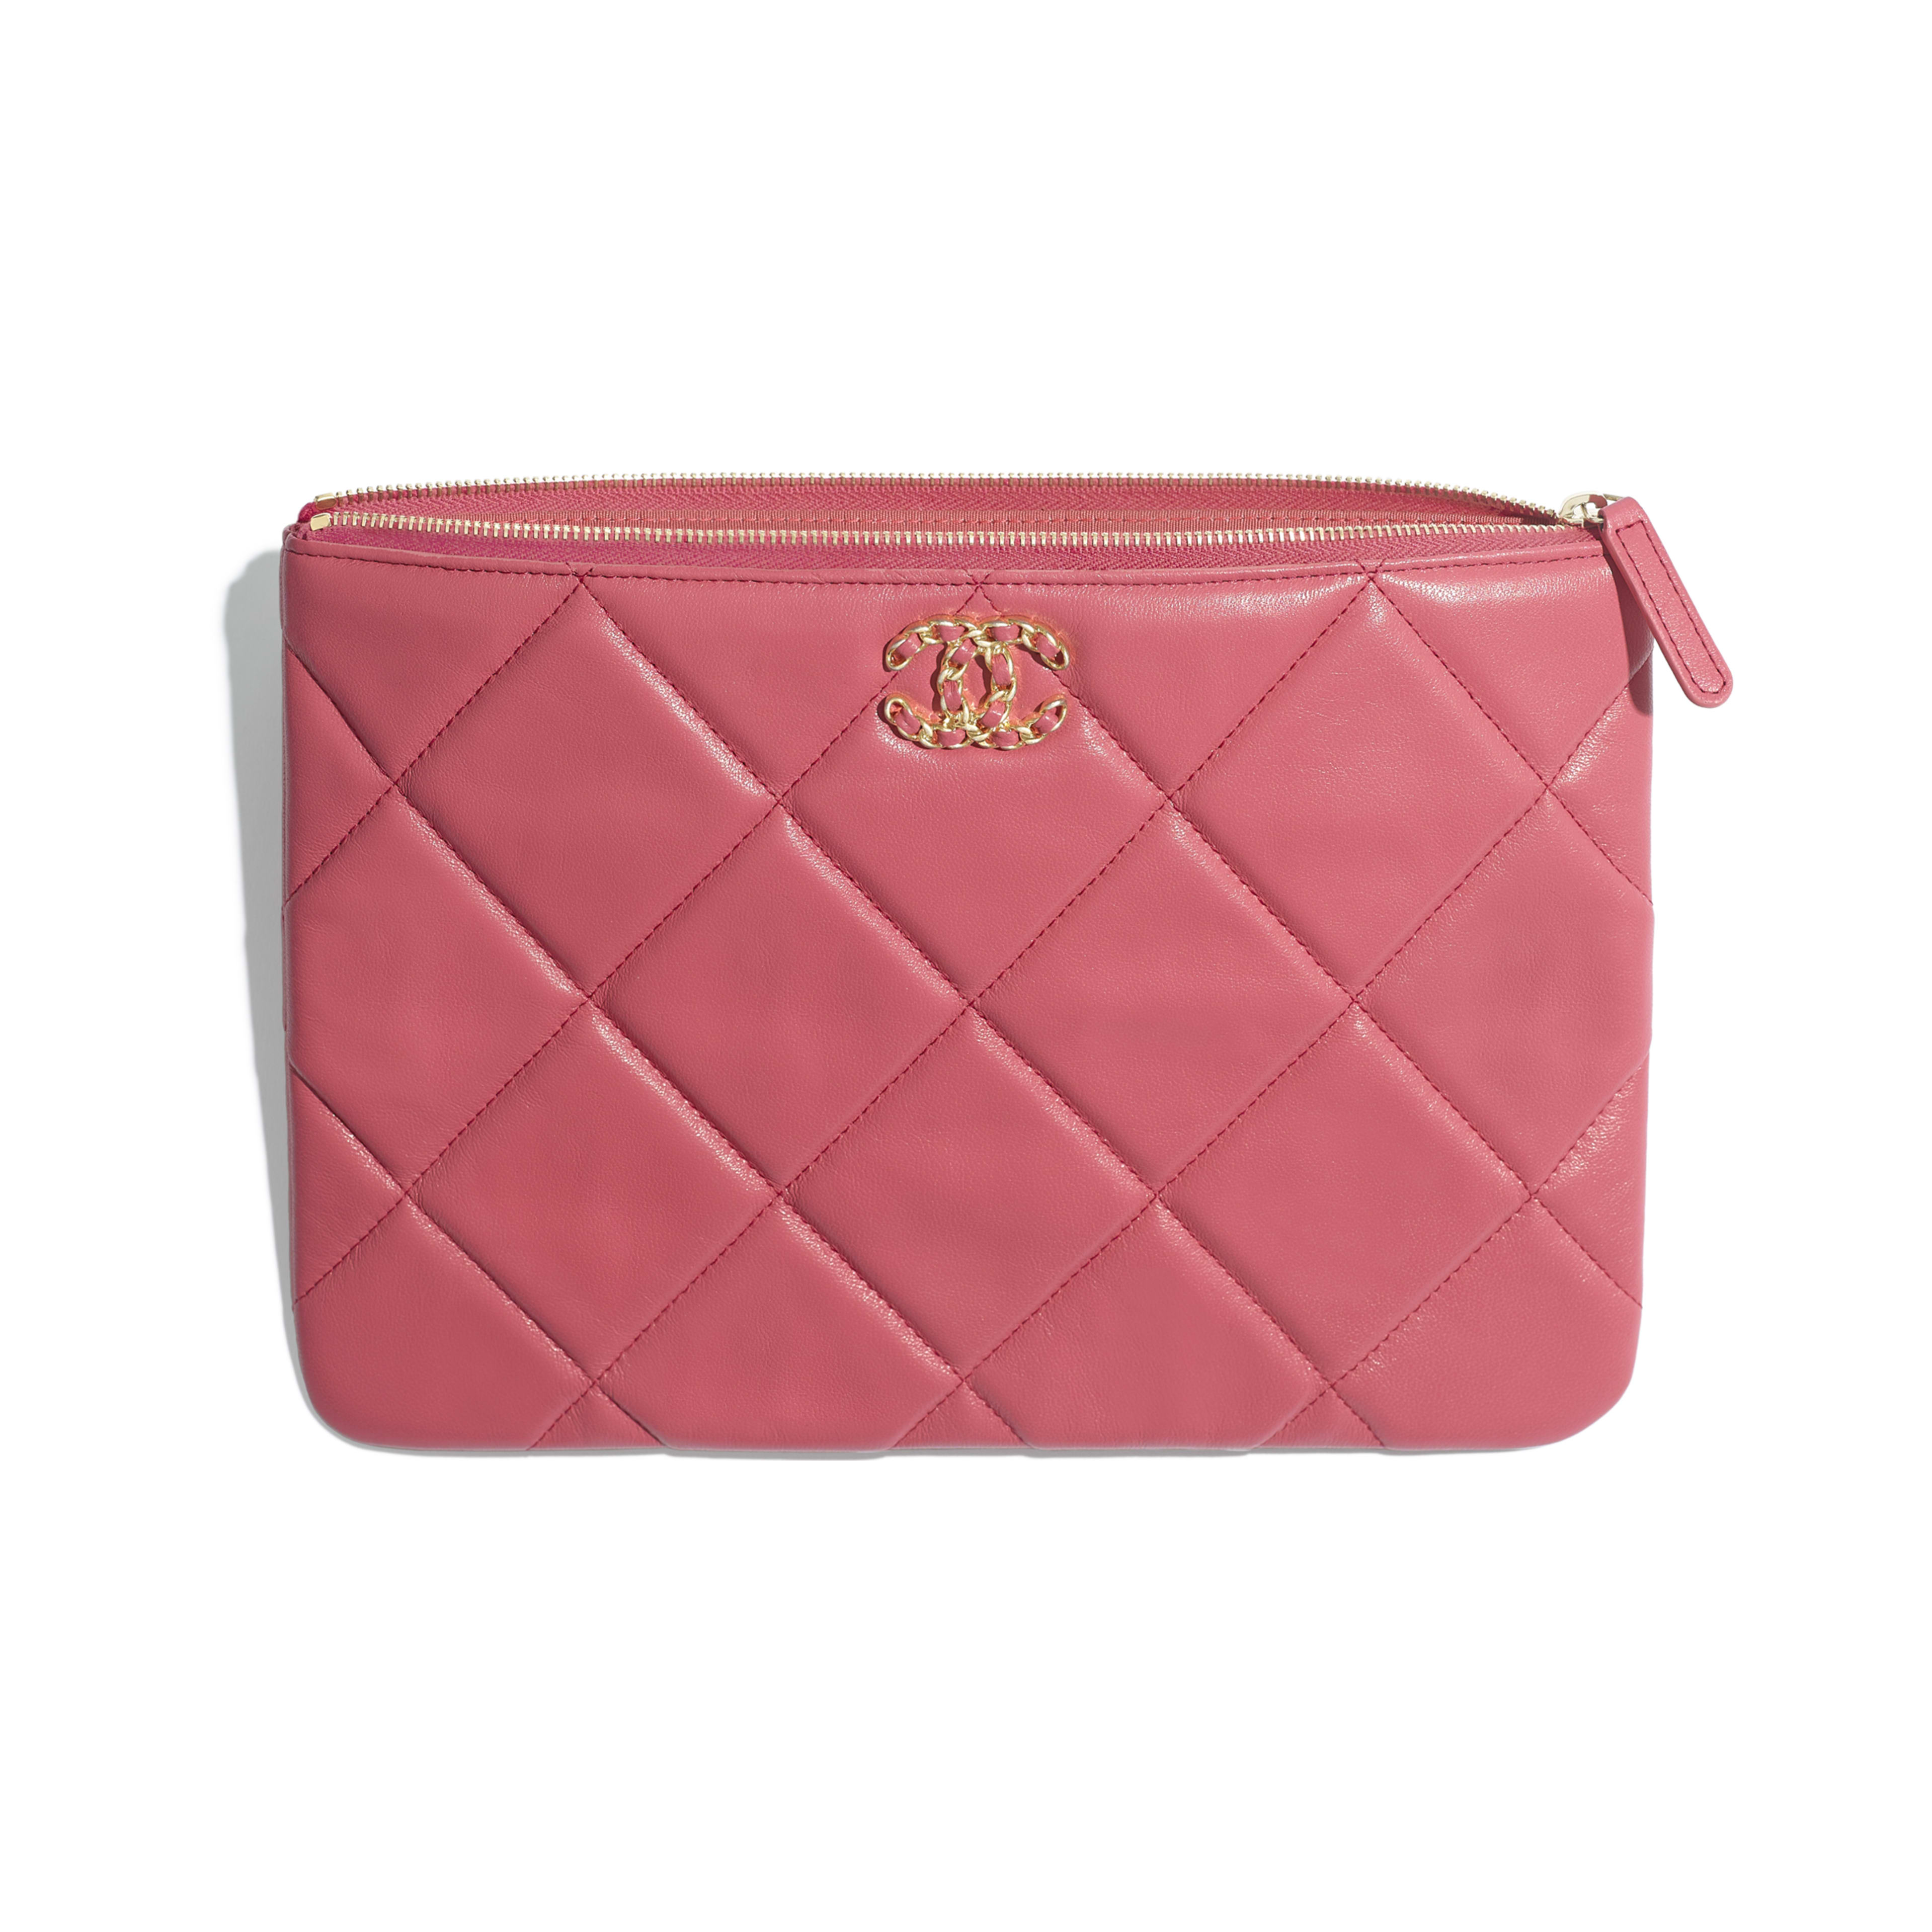 CHANEL 19 Pouch - Pink - Lambskin, Gold-Tone, Silver-Tone & Ruthenium-Finish Metal - Other view - see full sized version